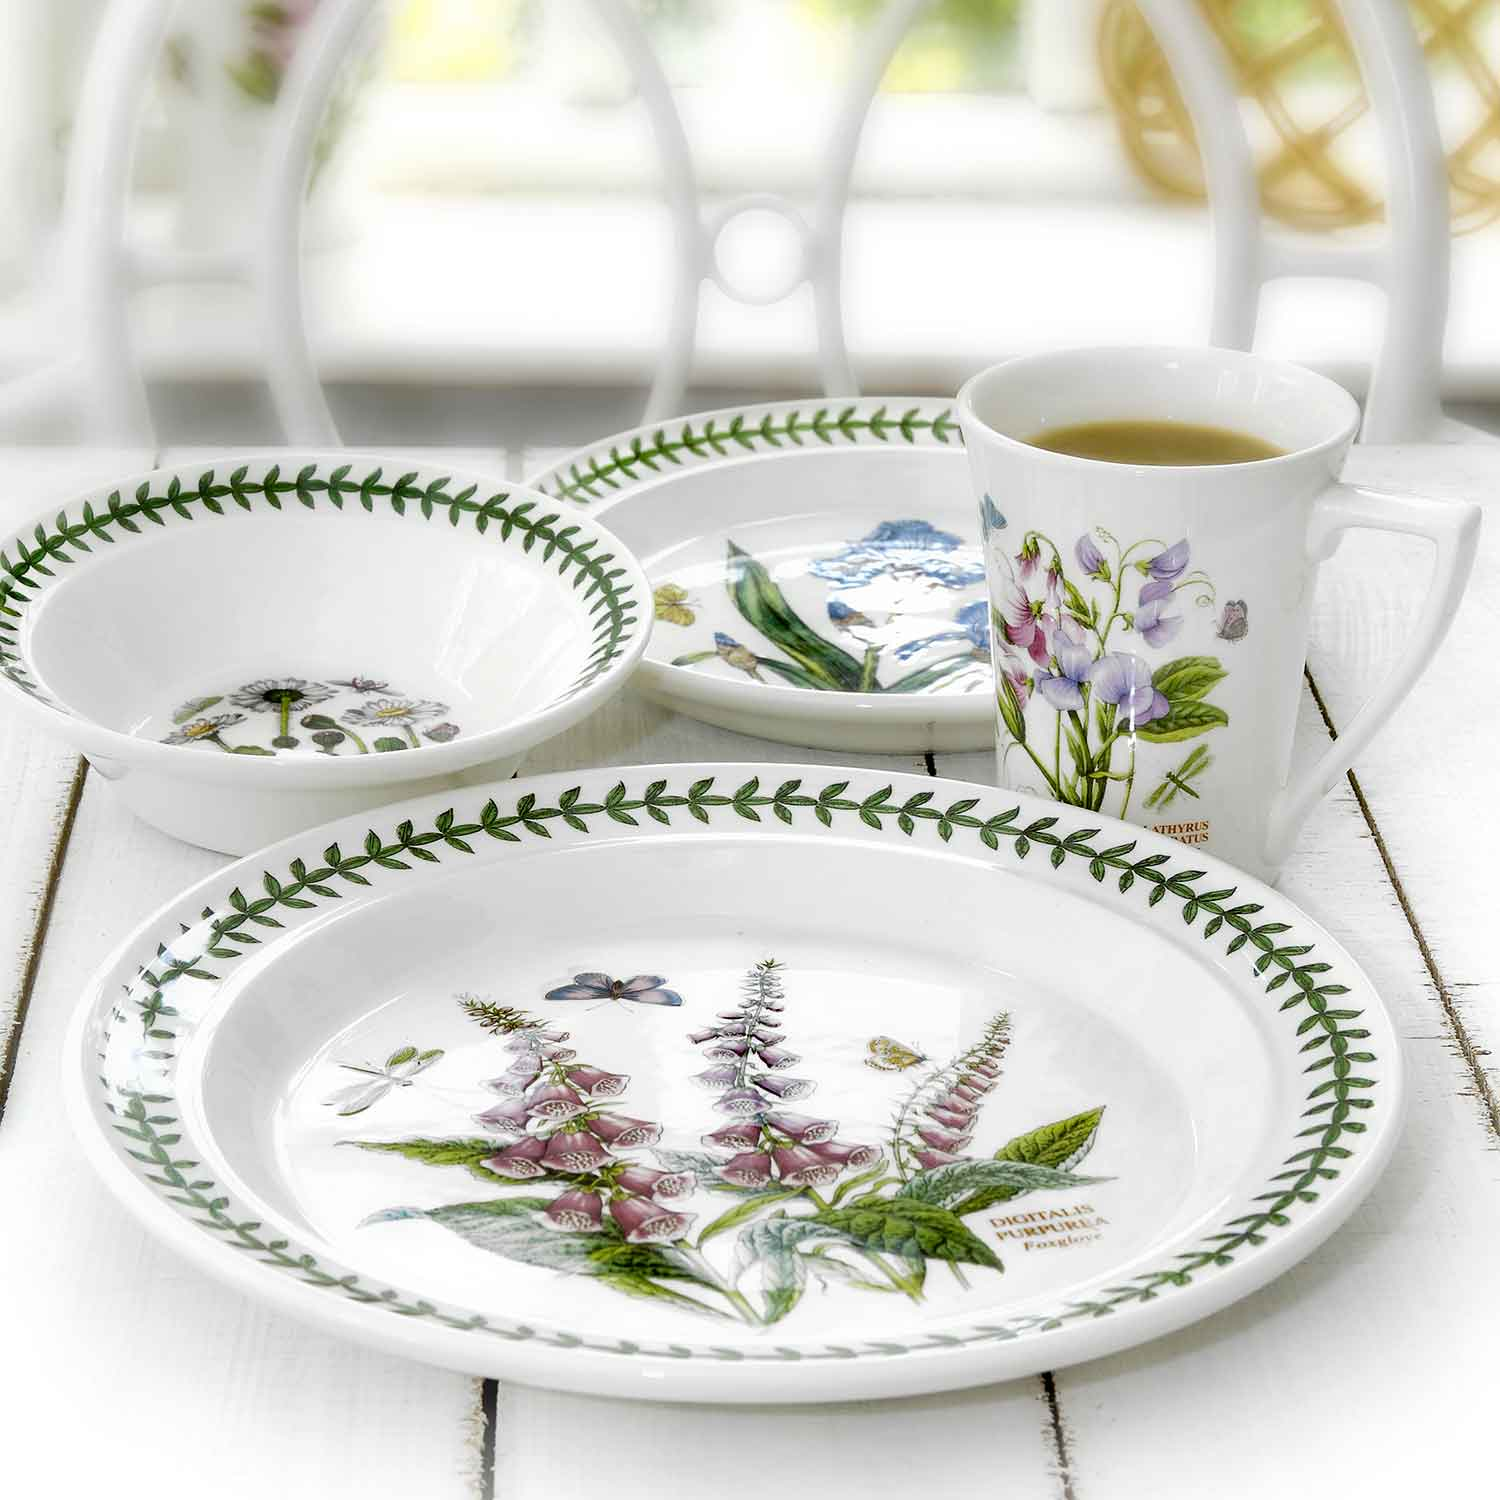 5 Piece Place Setting - Traditional (Curved) Teacup